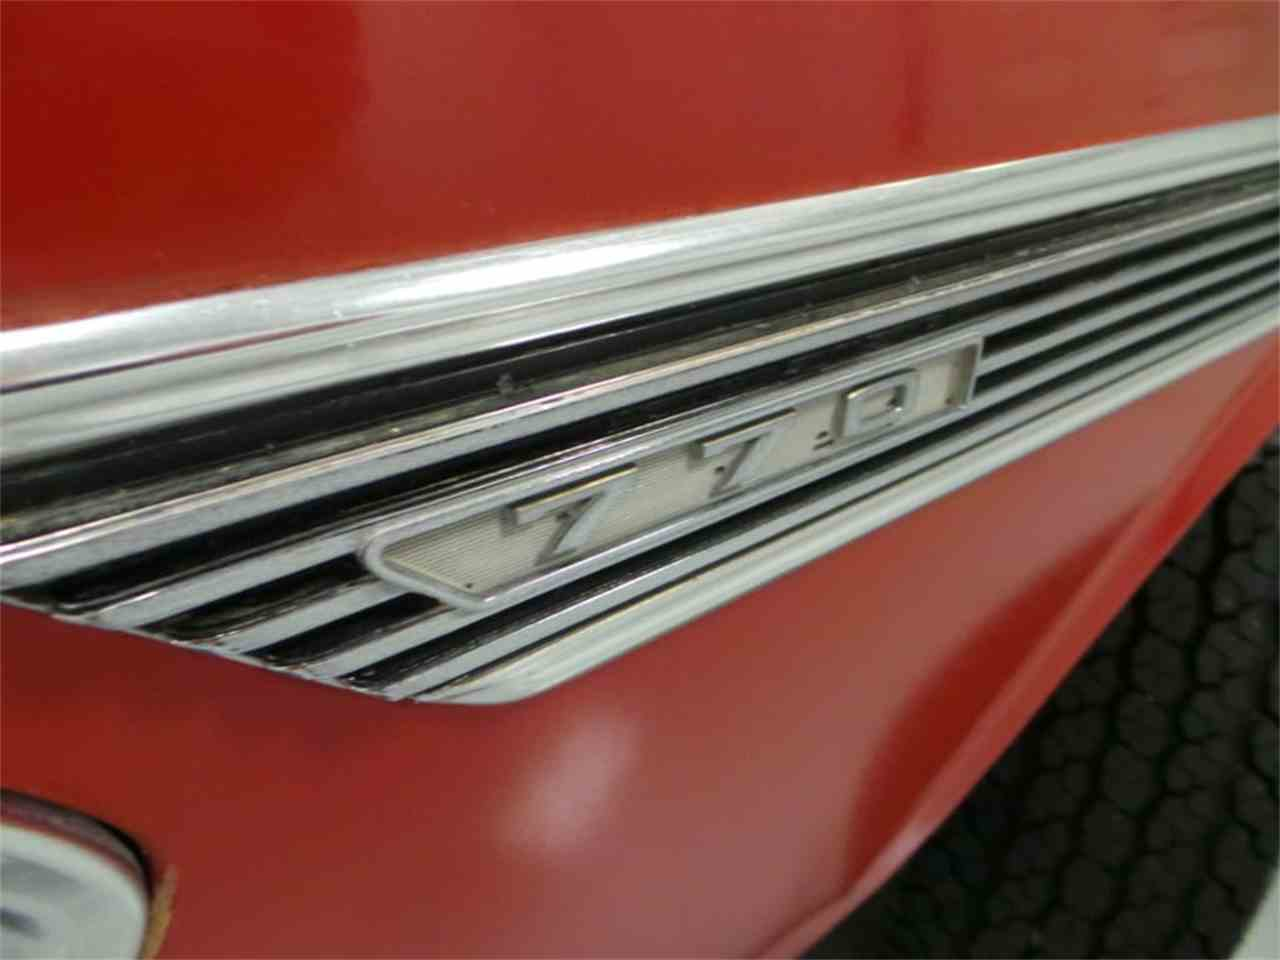 Large Picture of '64 AMC Rambler located in Christiansburg Virginia - $7,993.00 Offered by Duncan Imports & Classic Cars - JLAX